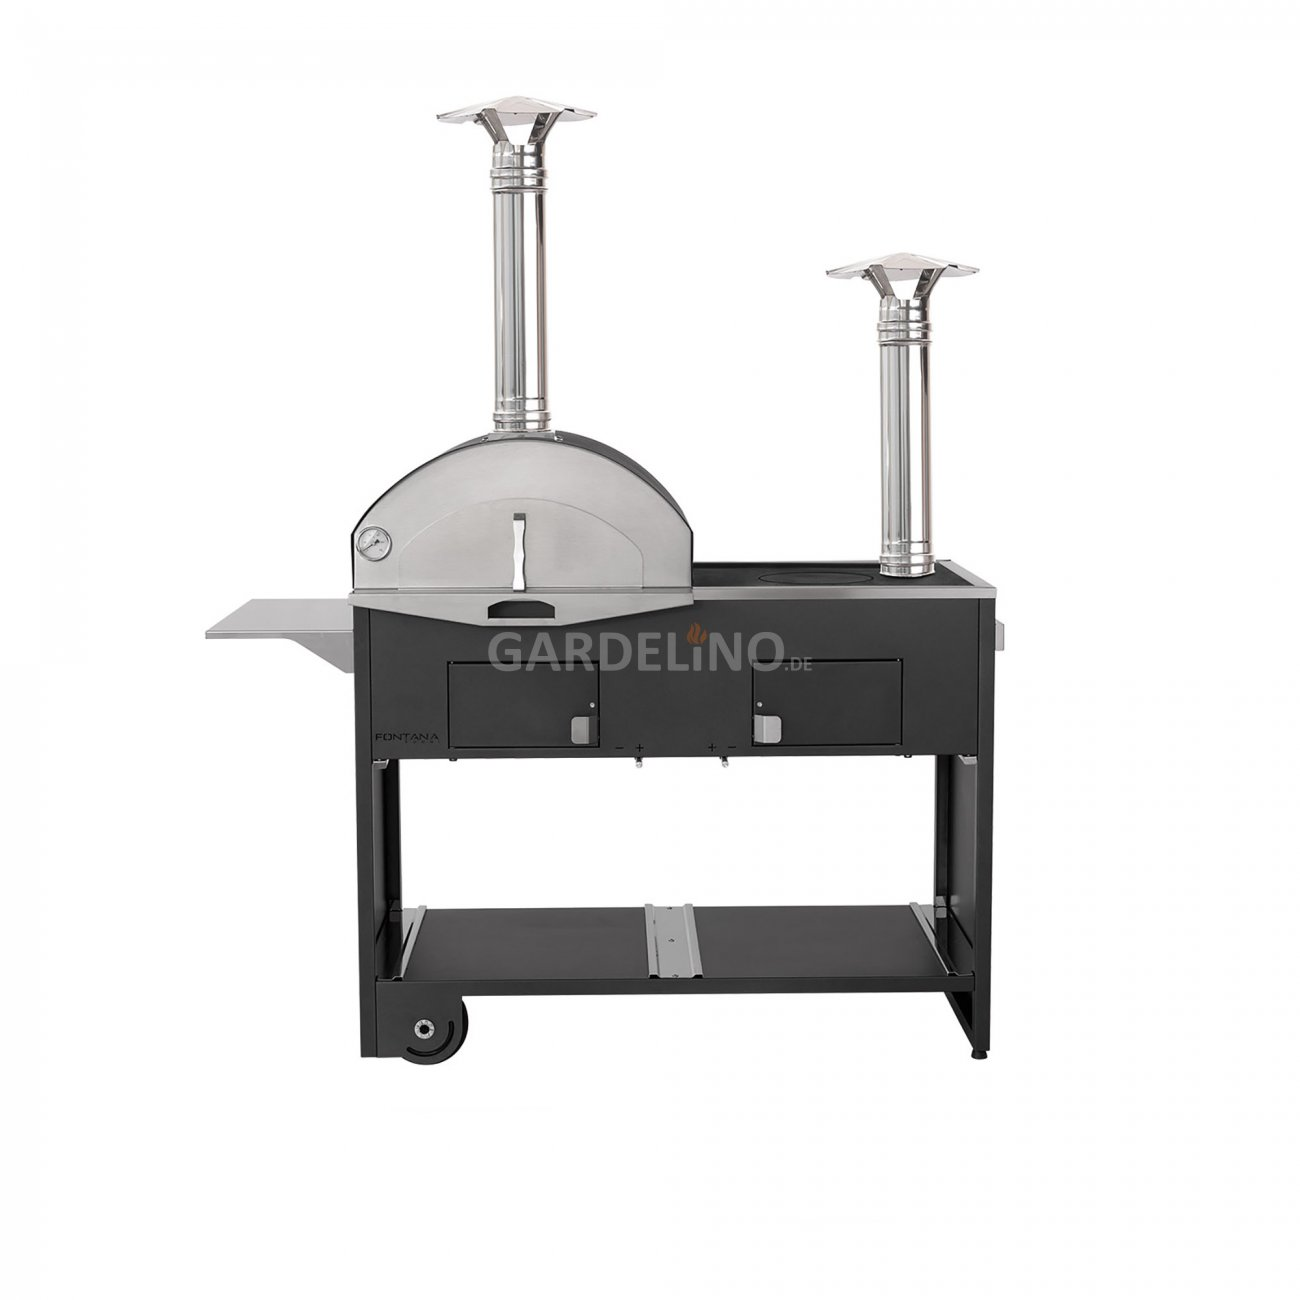 grill pizzaofen kombination pizza cucina doppio. Black Bedroom Furniture Sets. Home Design Ideas